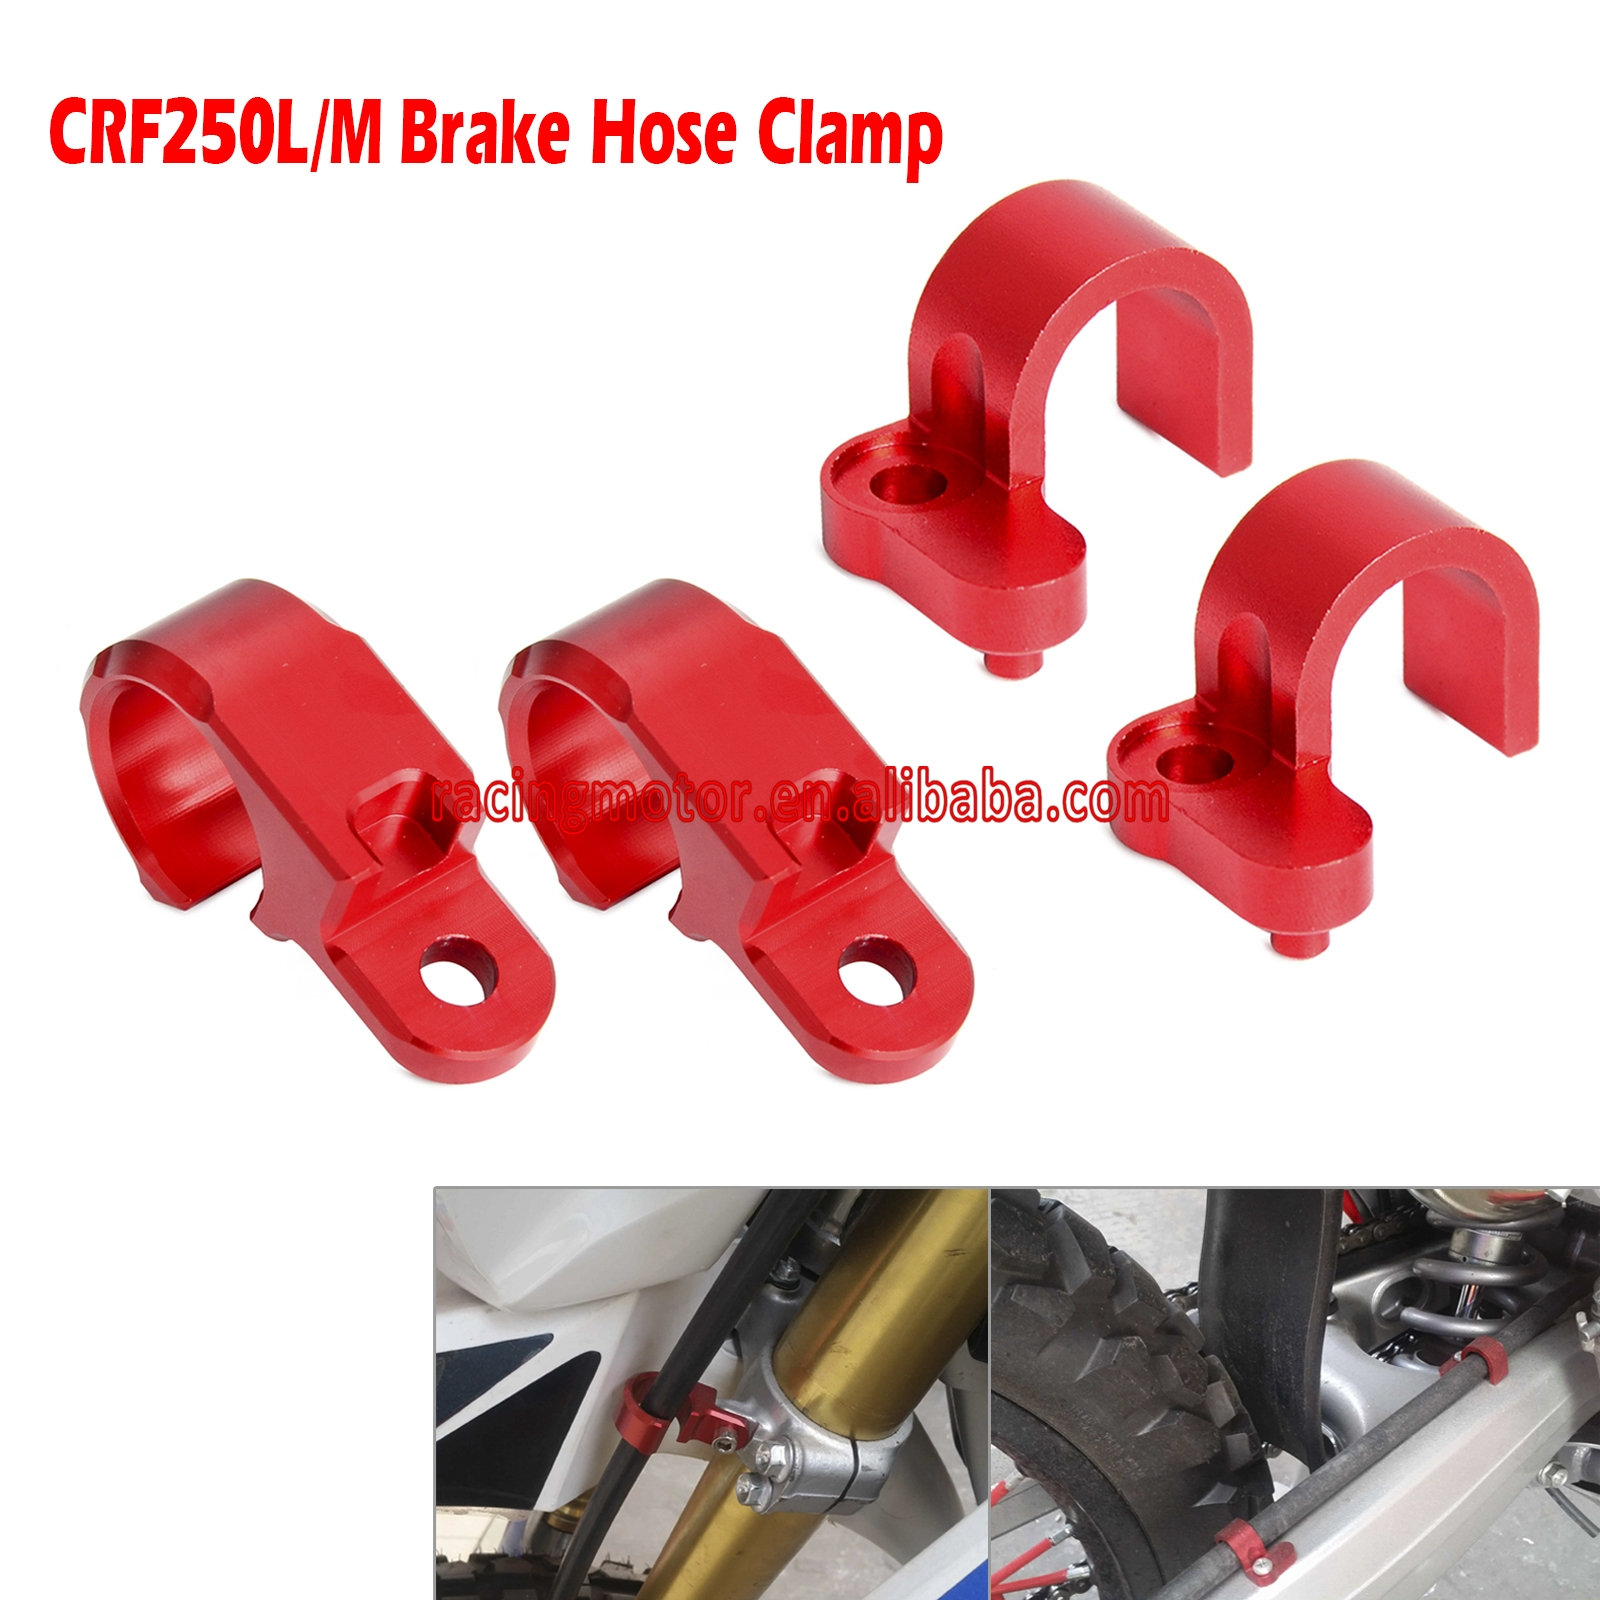 CNC Front & Rear Brake Line Hose Clamp Holder For Honda CRF250L CRF250M 2012 - 2015 2013 2014 CRF250 L/M high quality car styling case for mitsubishi lancer ex 2009 2011 headlights led headlight drl lens double beam hid xenon